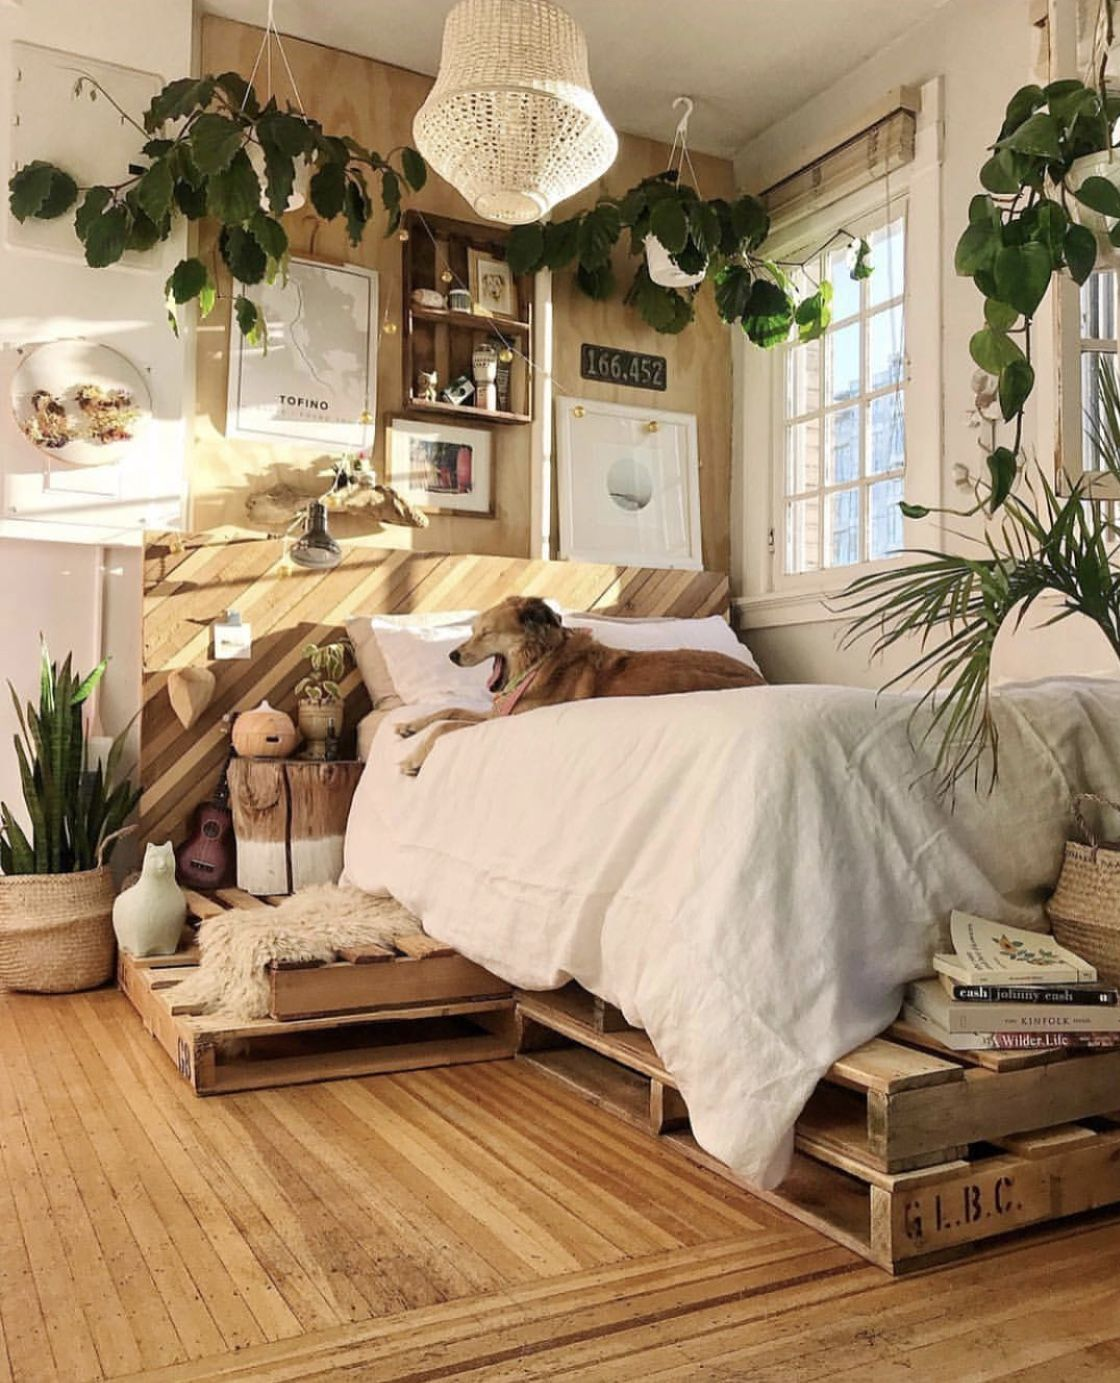 16 Relaxing Bedroom Designs For Your Comfort: 10 Awesome Small Bedroom Ideas To Optimize Your Tiny Space